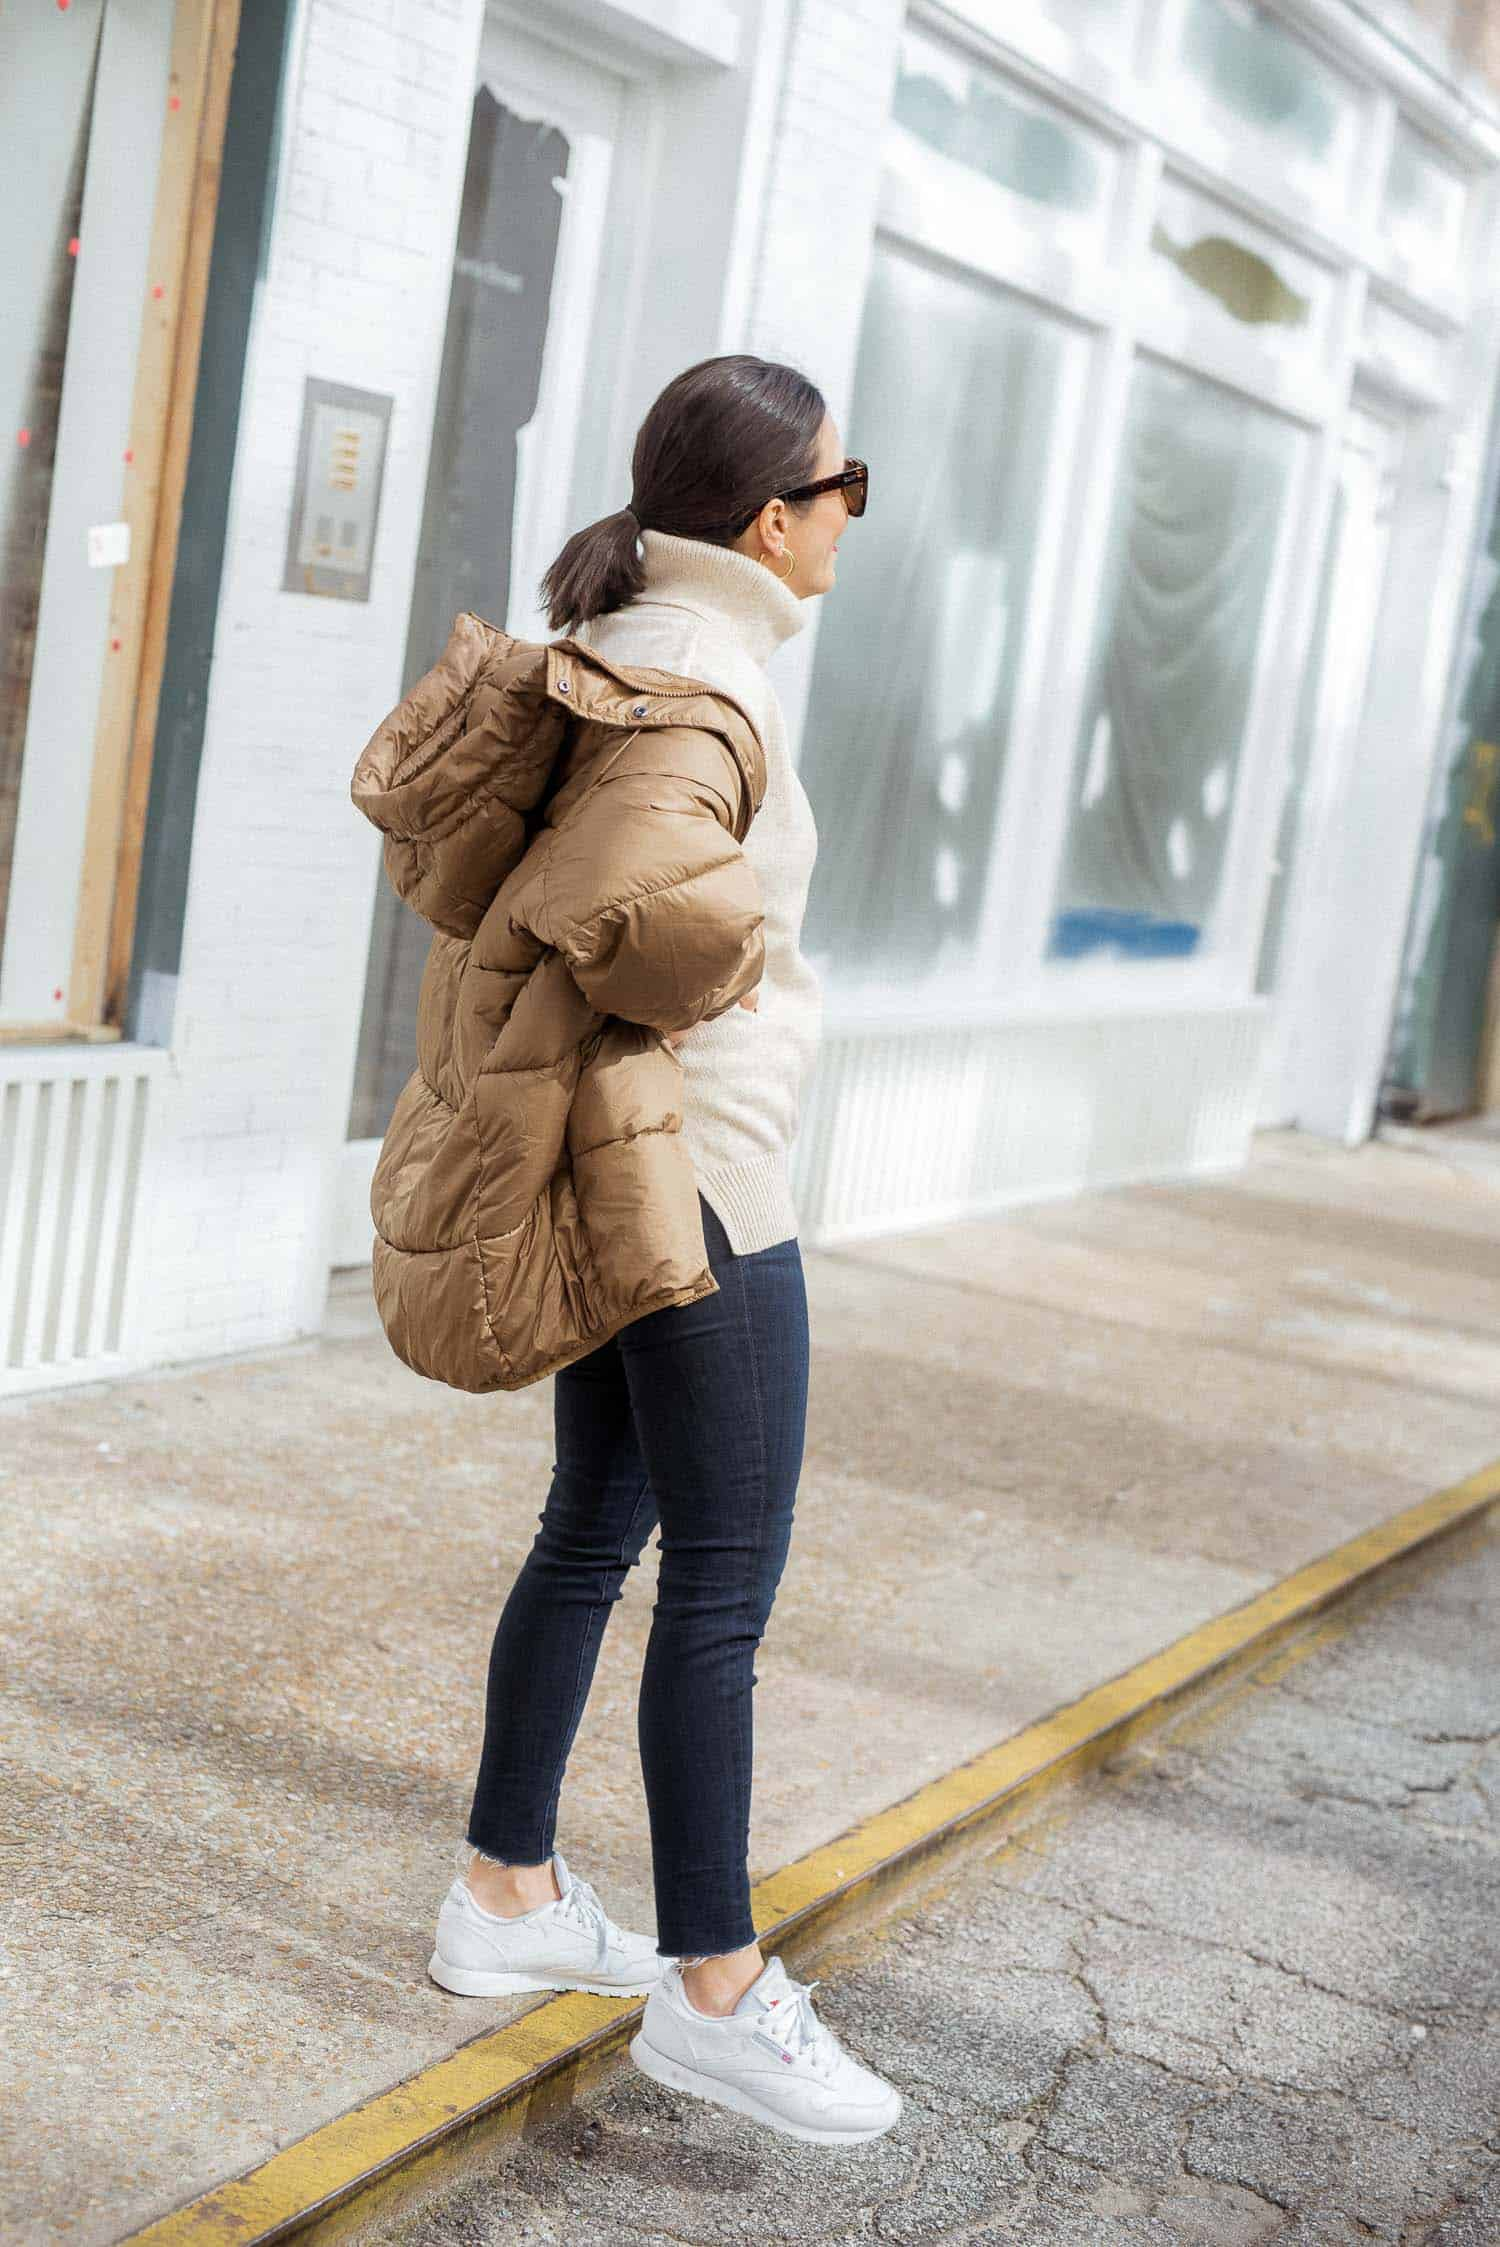 Jessica of My Style Vita wearing a puffy coat and Reeboks.